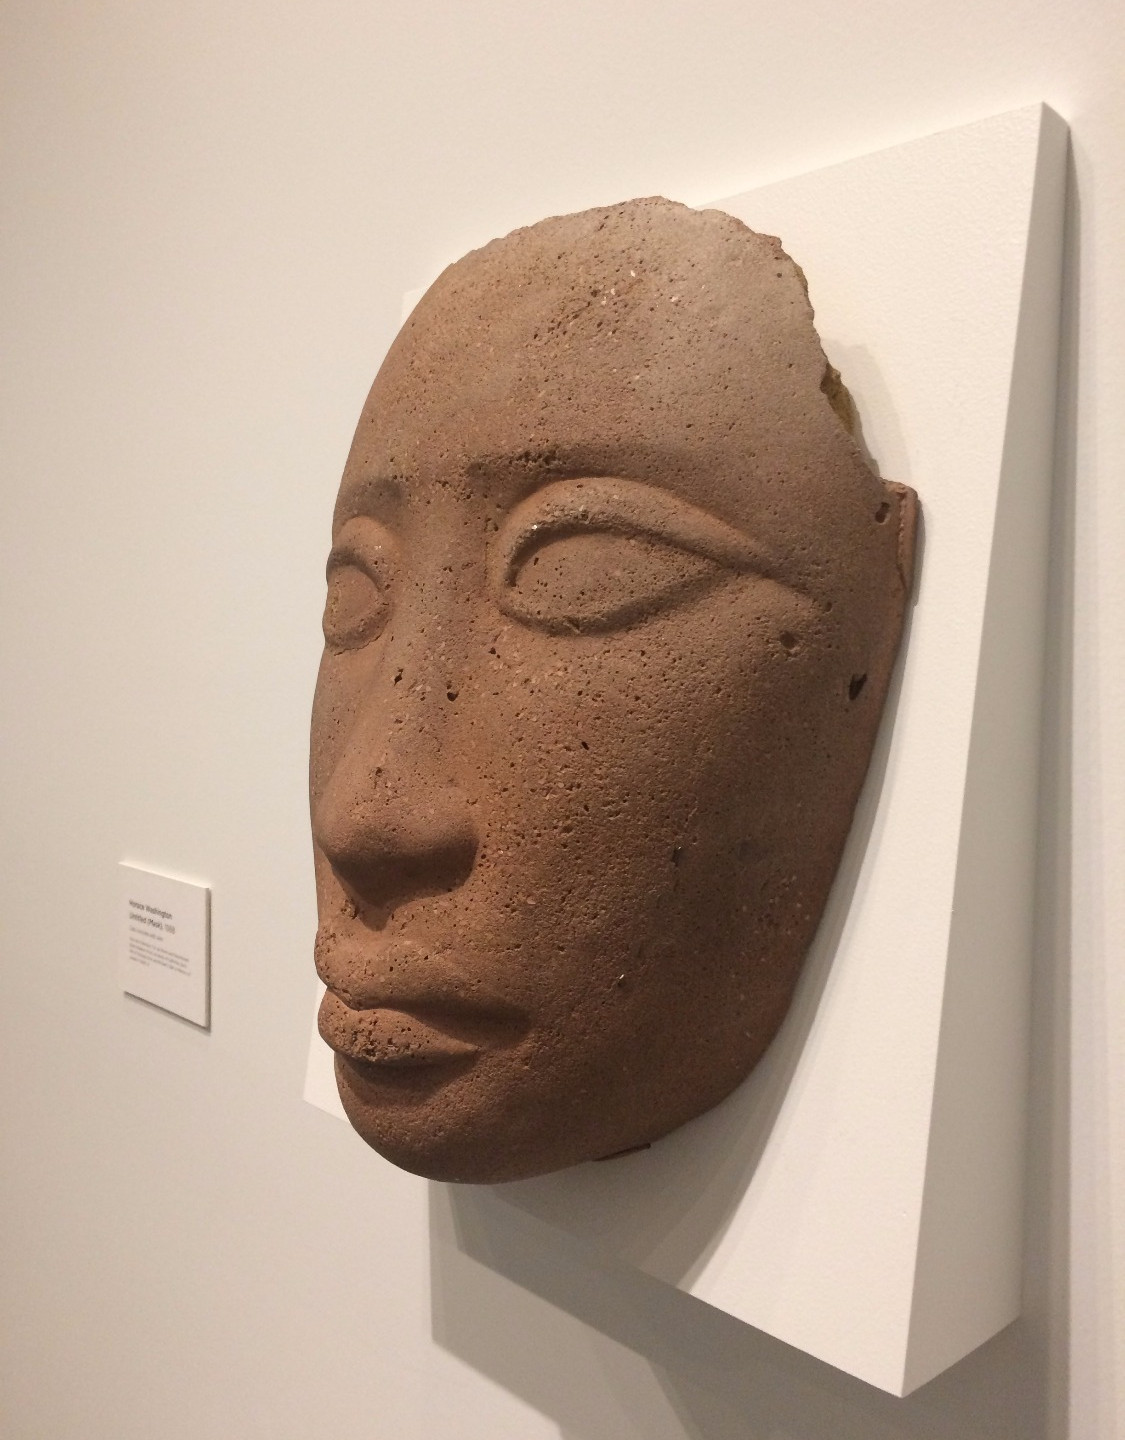 Horace Washington, Untitled (Mask), 1988